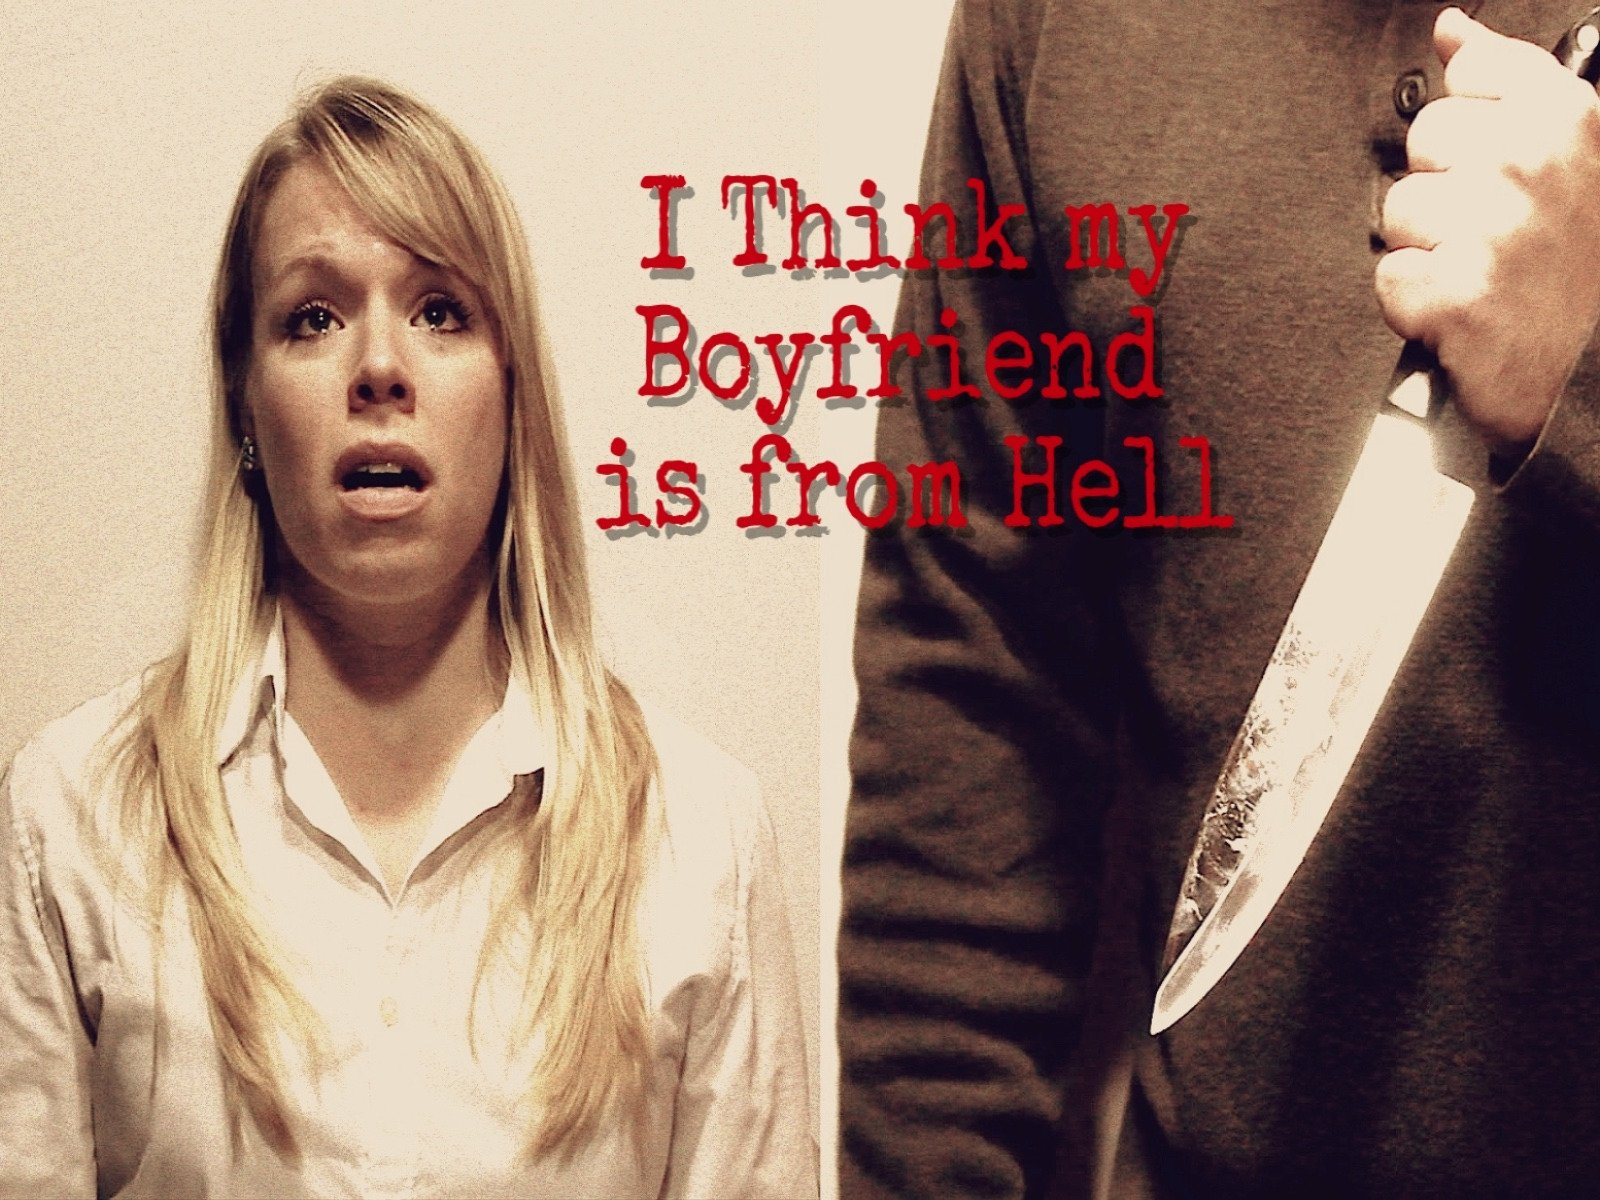 I Think my Boyfriend is from Hell - Season 1